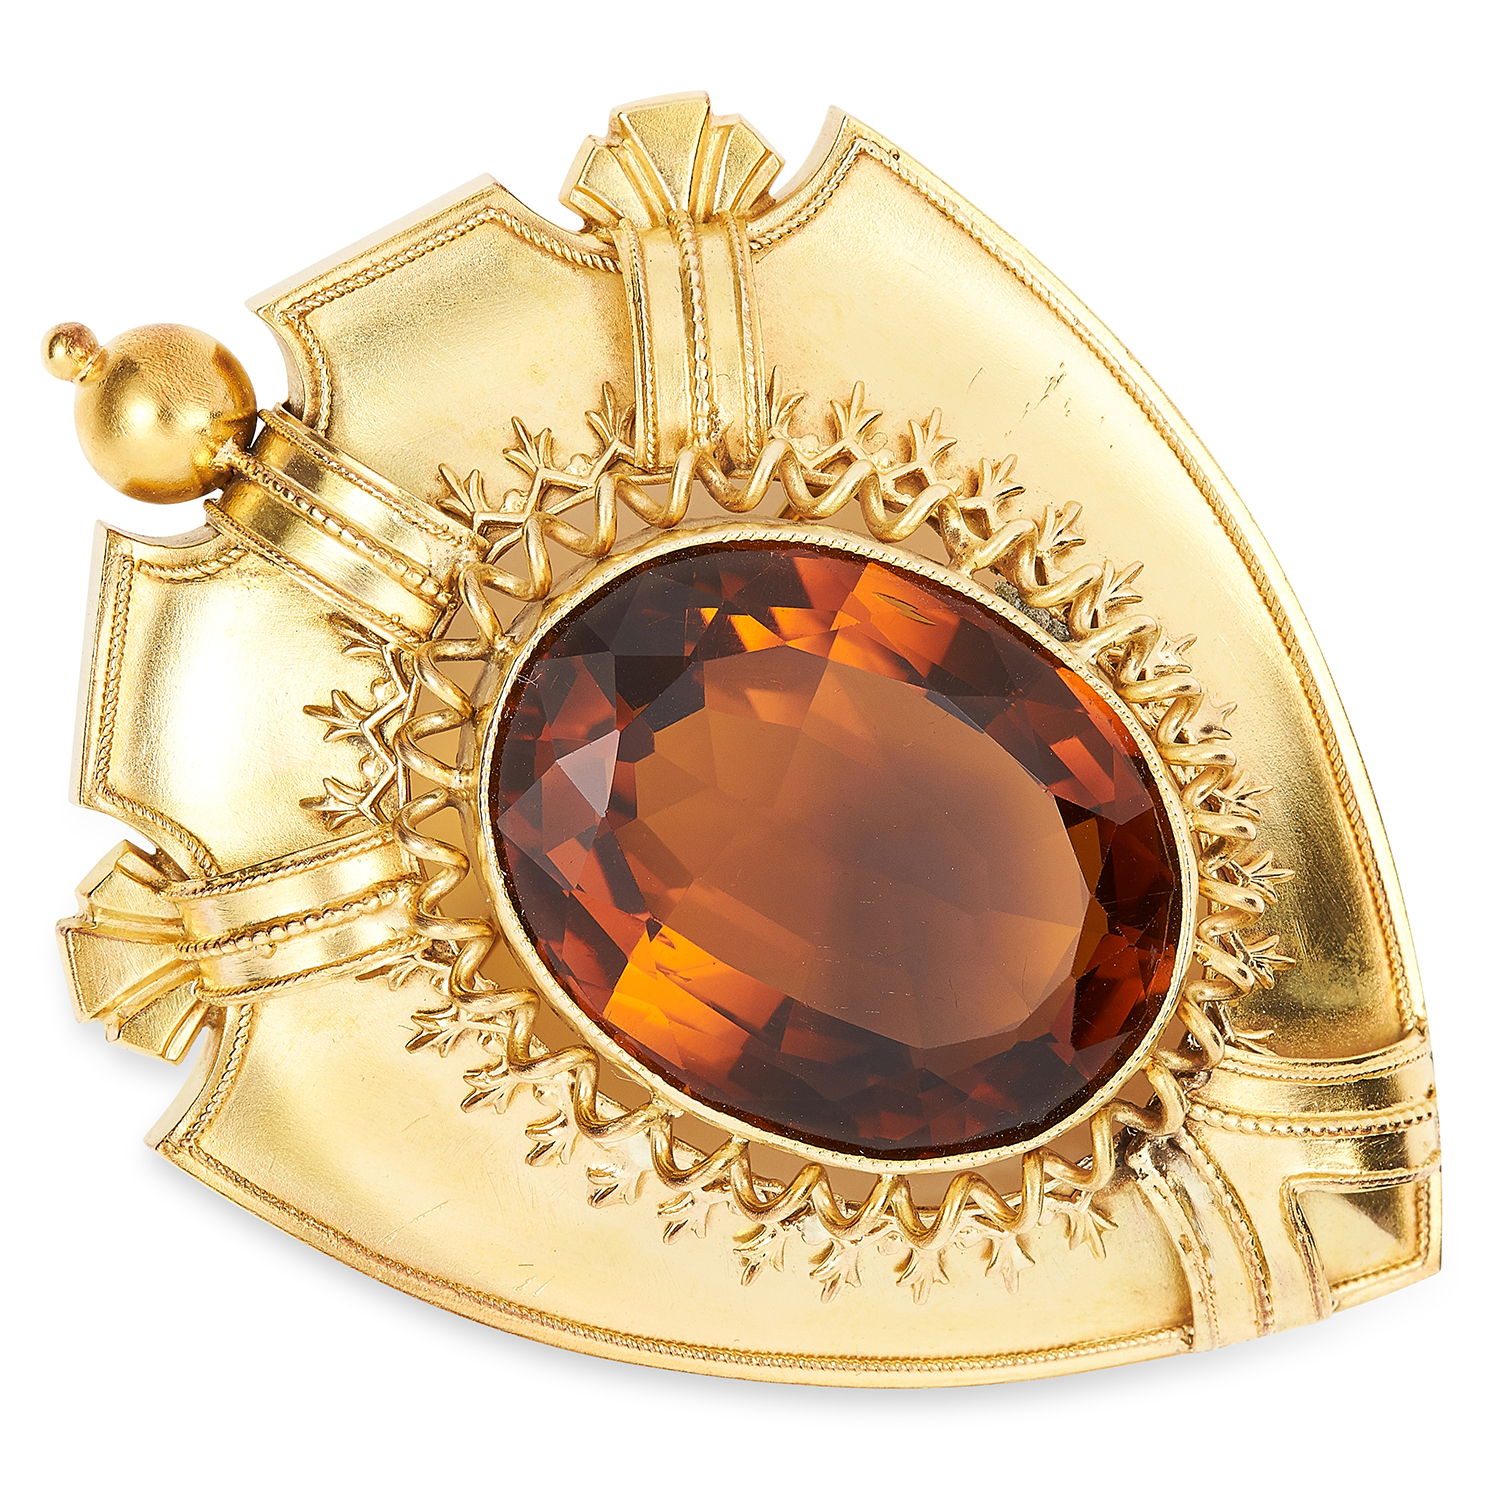 ANTIQUE VICTORIAN CITRINE BROOCH in high carat yellow gold, depicting a shield set with an oval